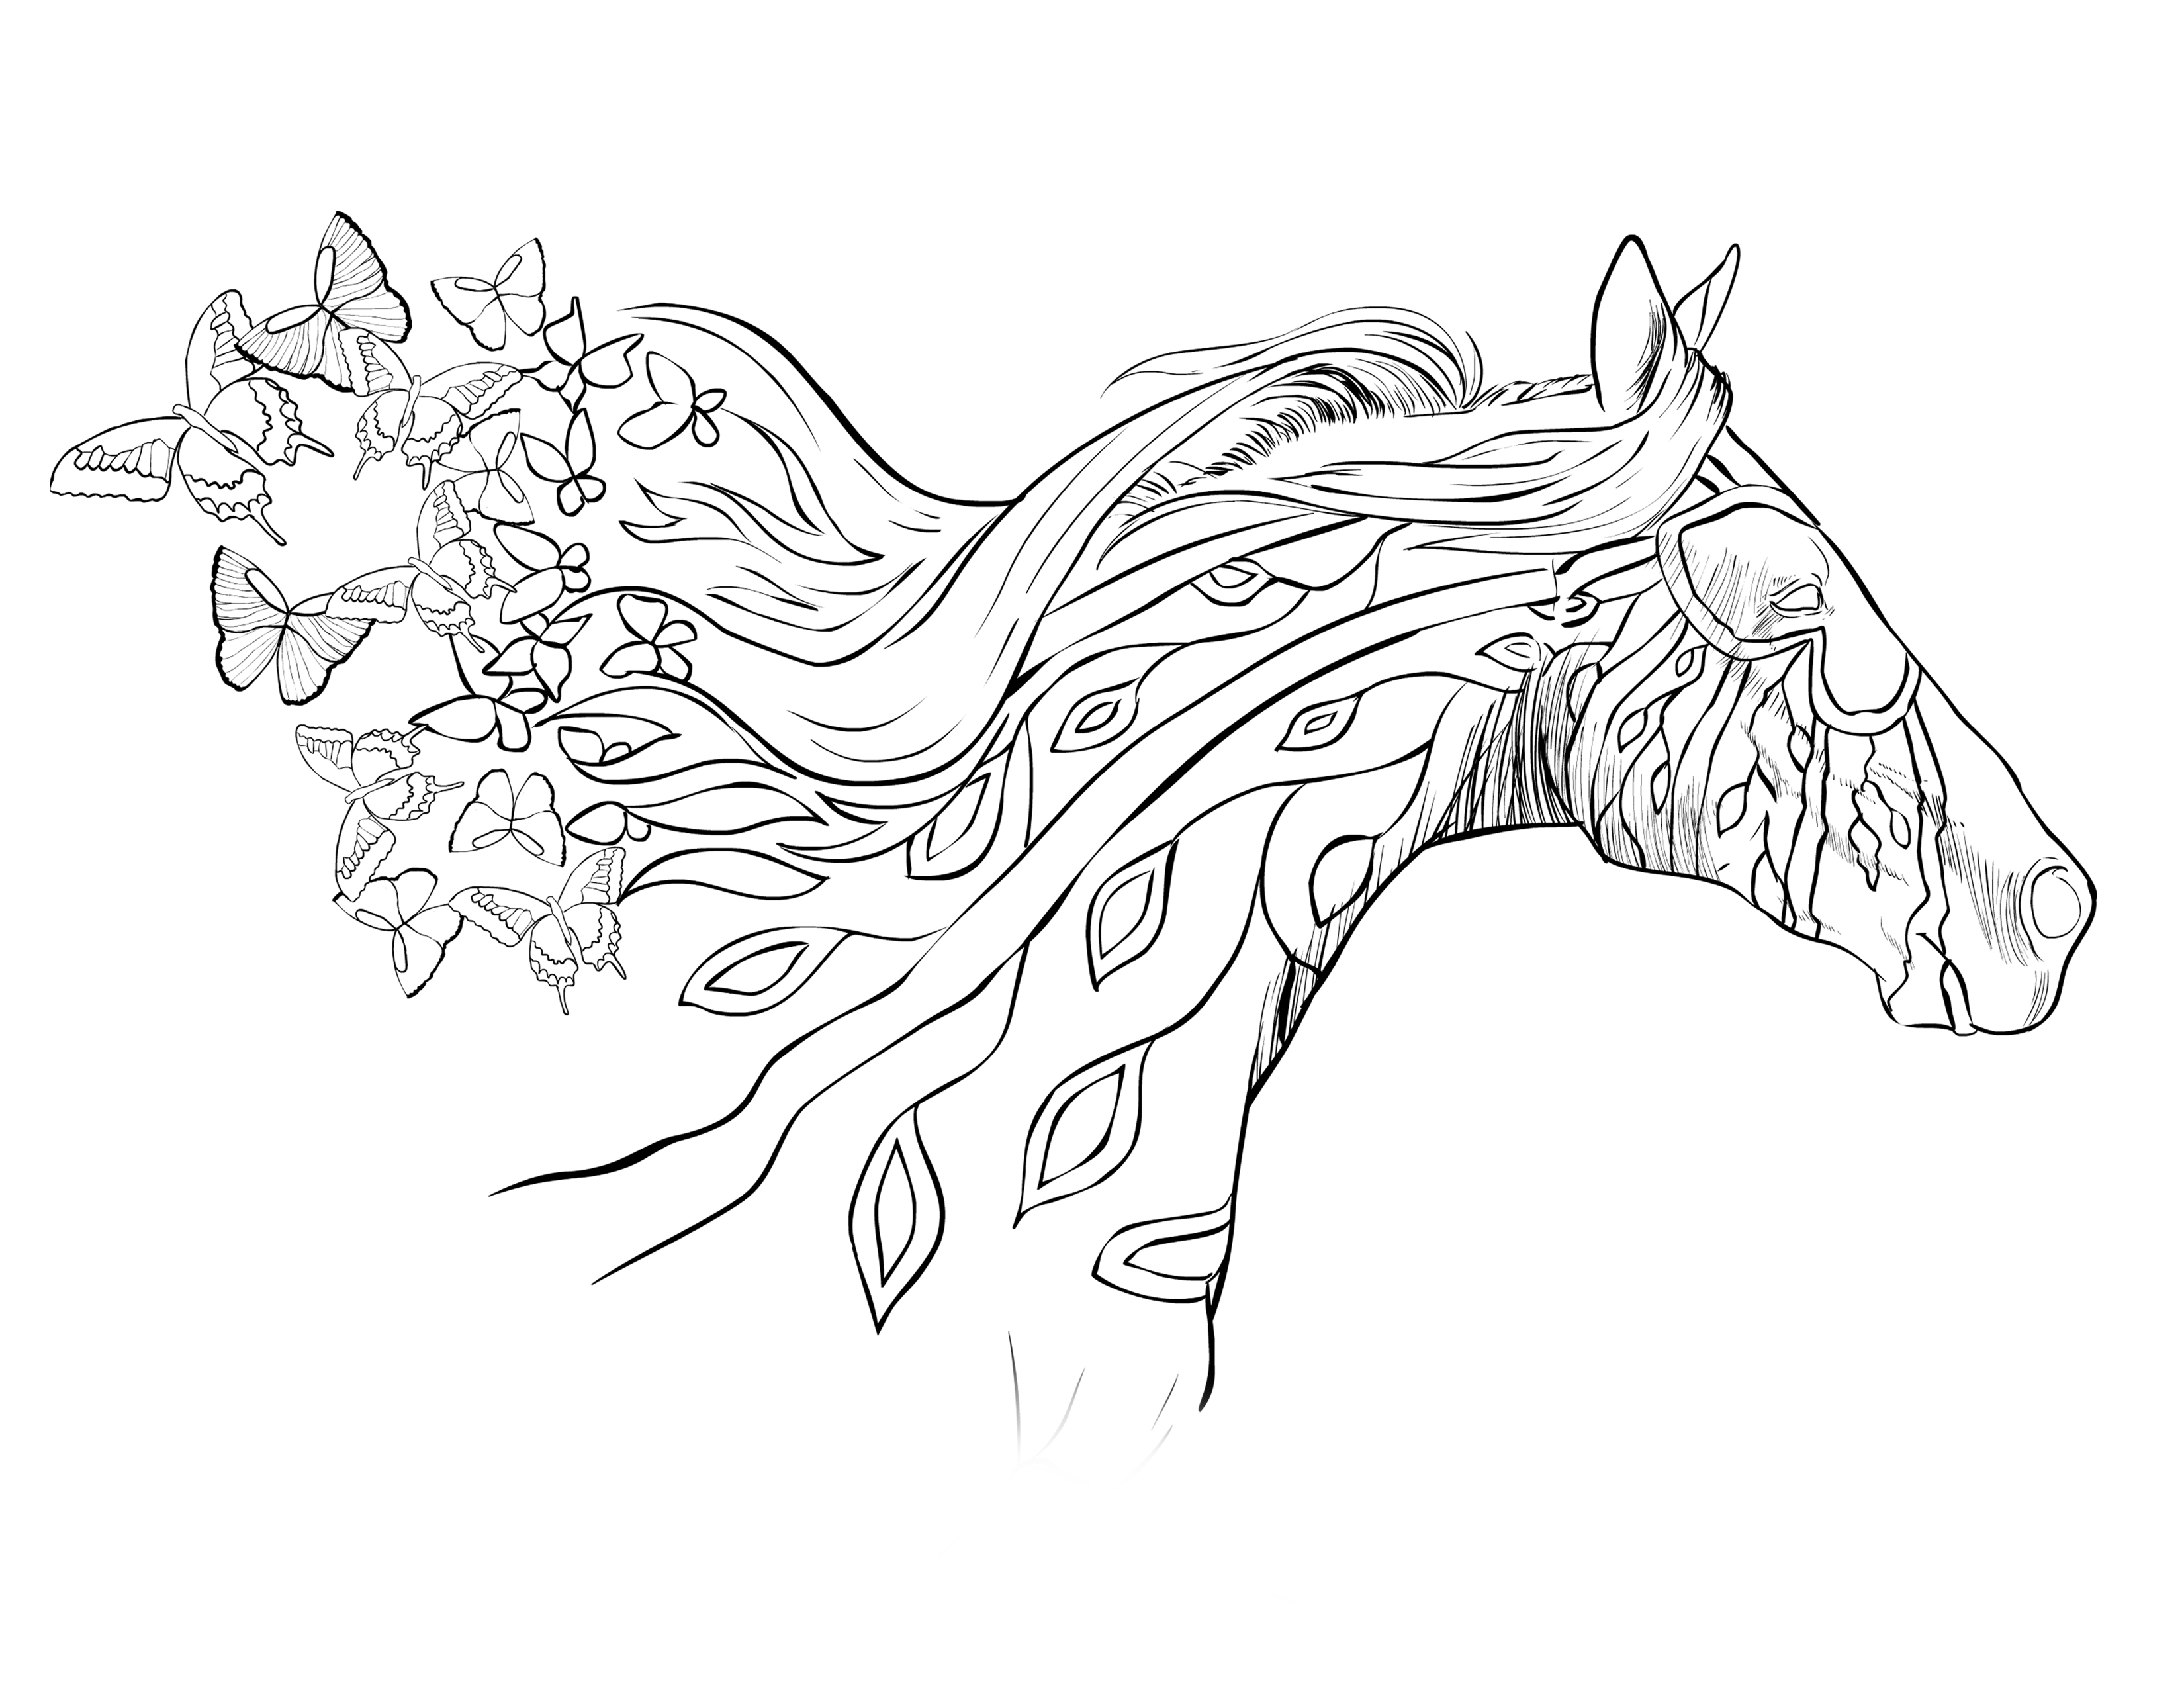 running horse coloring pages running with the wind selah works cindy39s adult coloring pages horse running